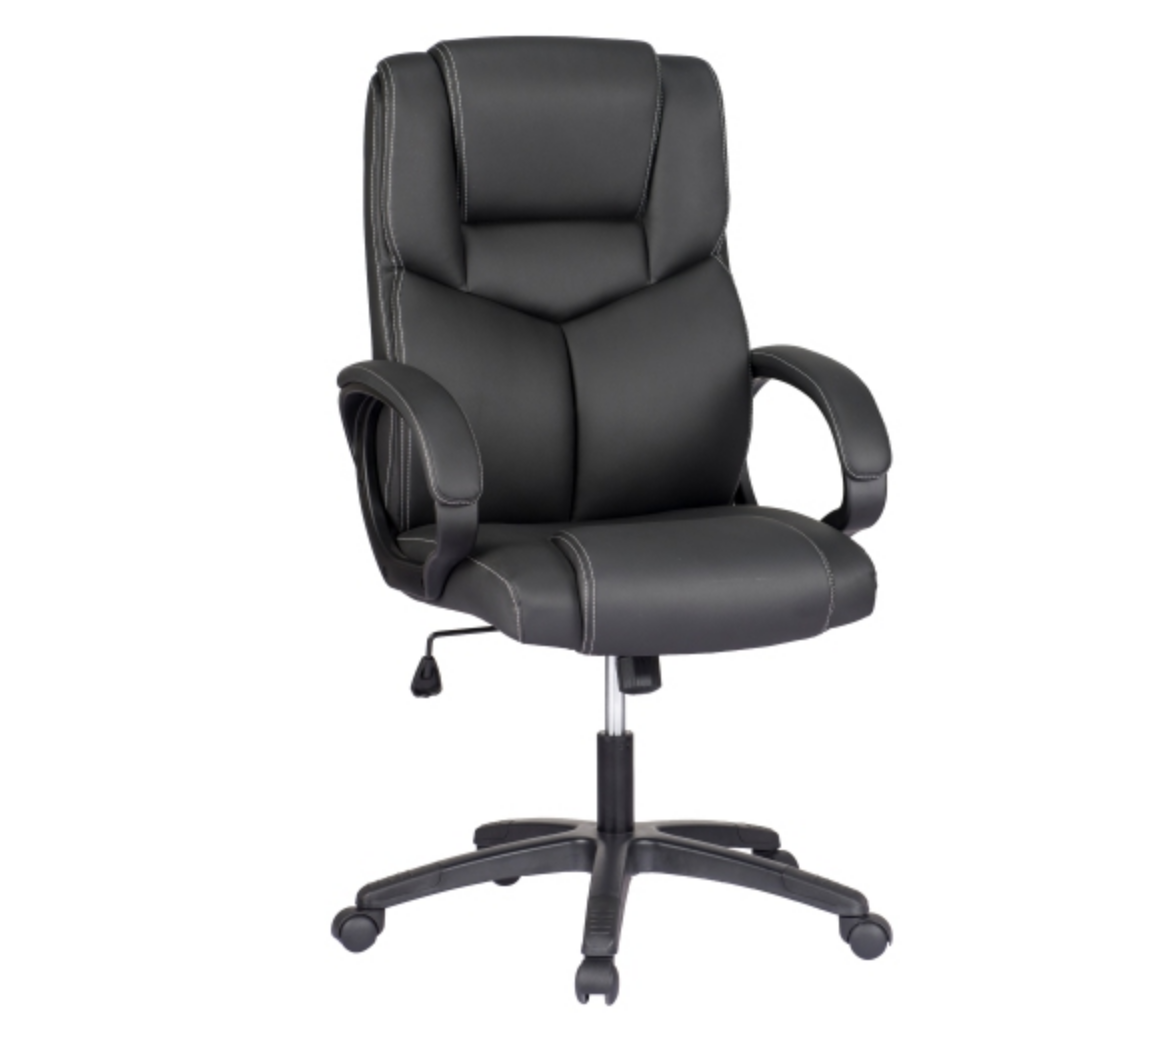 office chairs work at home